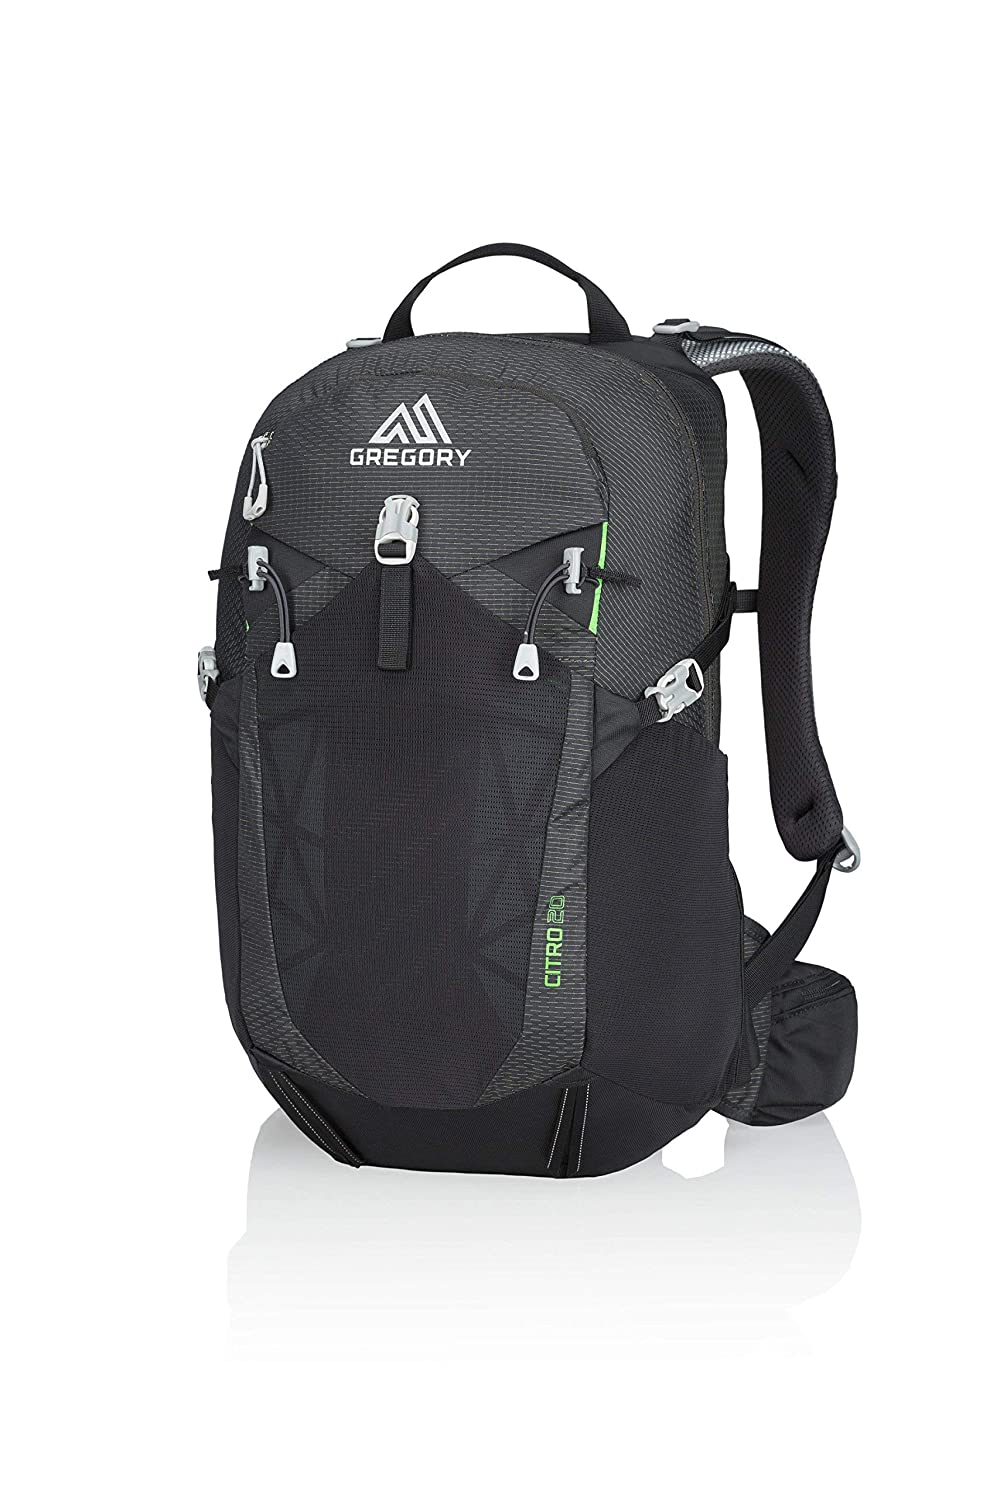 Gregory Liter Mountain Products Citro 20 Liter 20 3D-Hydro Citro Men's Daypack, Galaxy Black, One Size [並行輸入品] B07R3Y635L, 公式ライセンスアクセ専門店J-Plus:0305f77f --- anime-portal.club